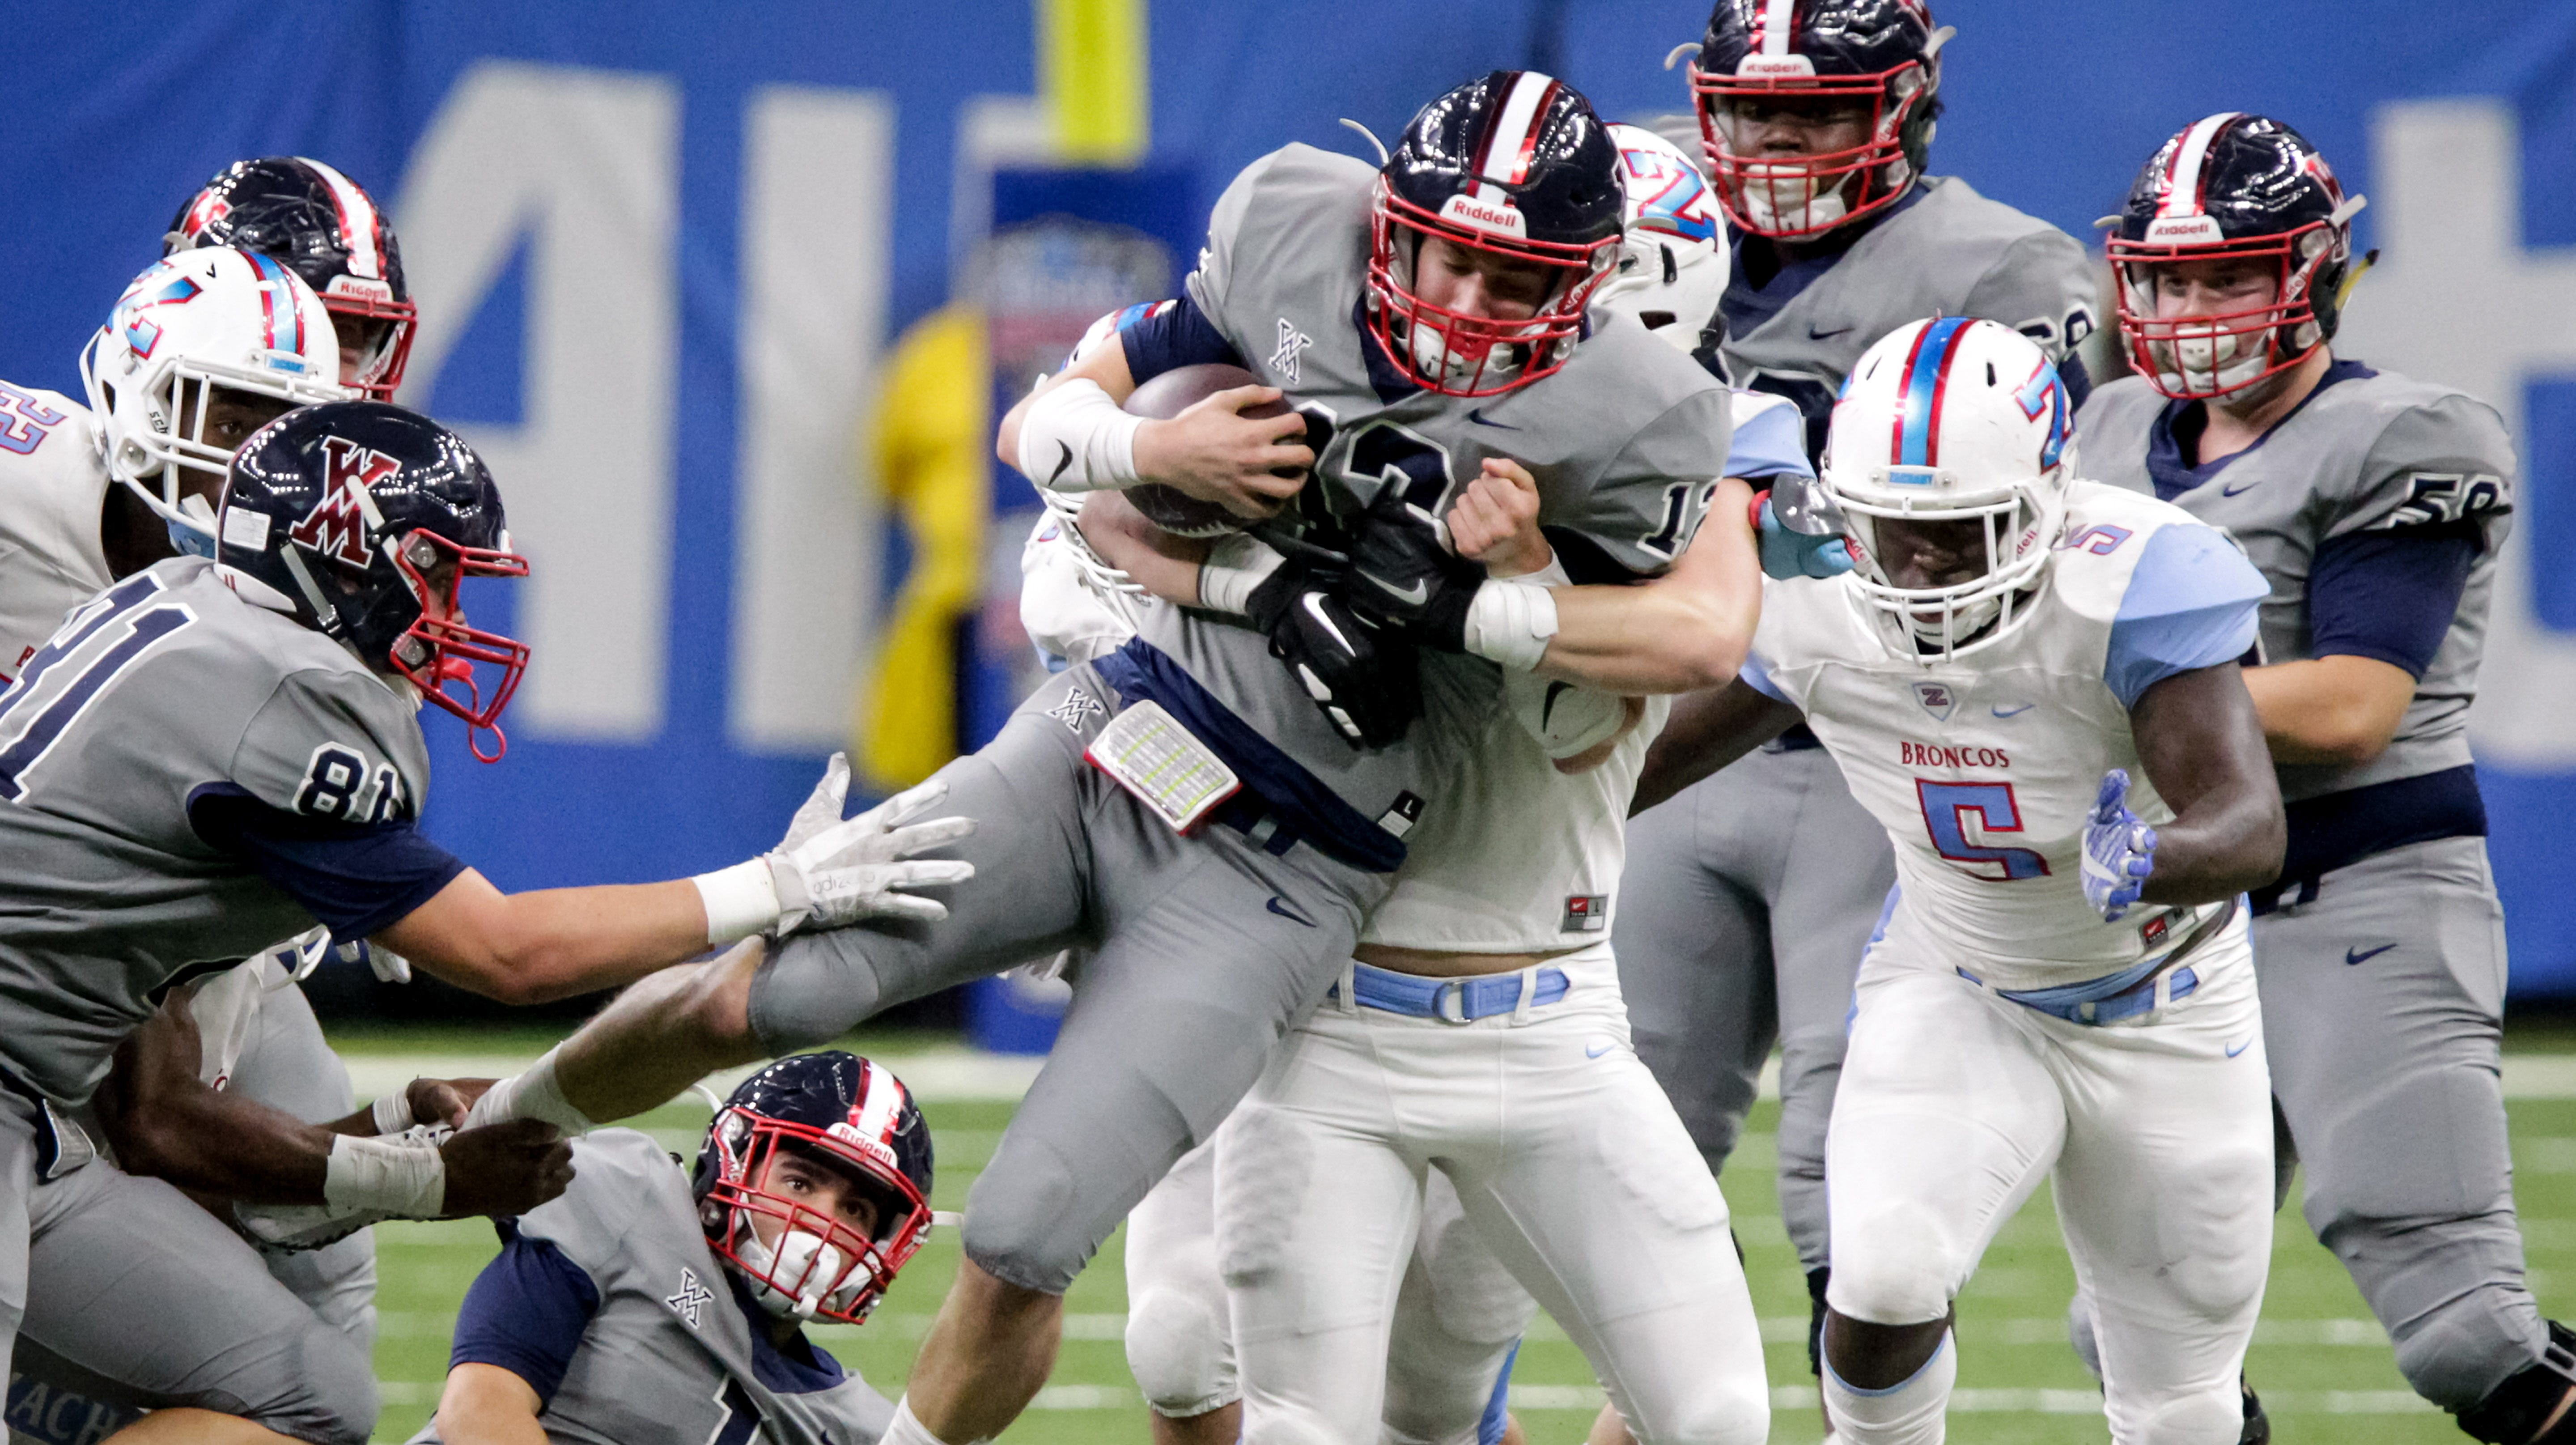 West Monroe's Garrett Kahmann (12) is tackled by Zachary's Maverick Mcclure (44) and Zachary's Cedric Brown (5) during the first half of the Class 5A championship Saturday, Dec. 8, 2018, at the Mercedes-Benz Superdome in New Orleans.